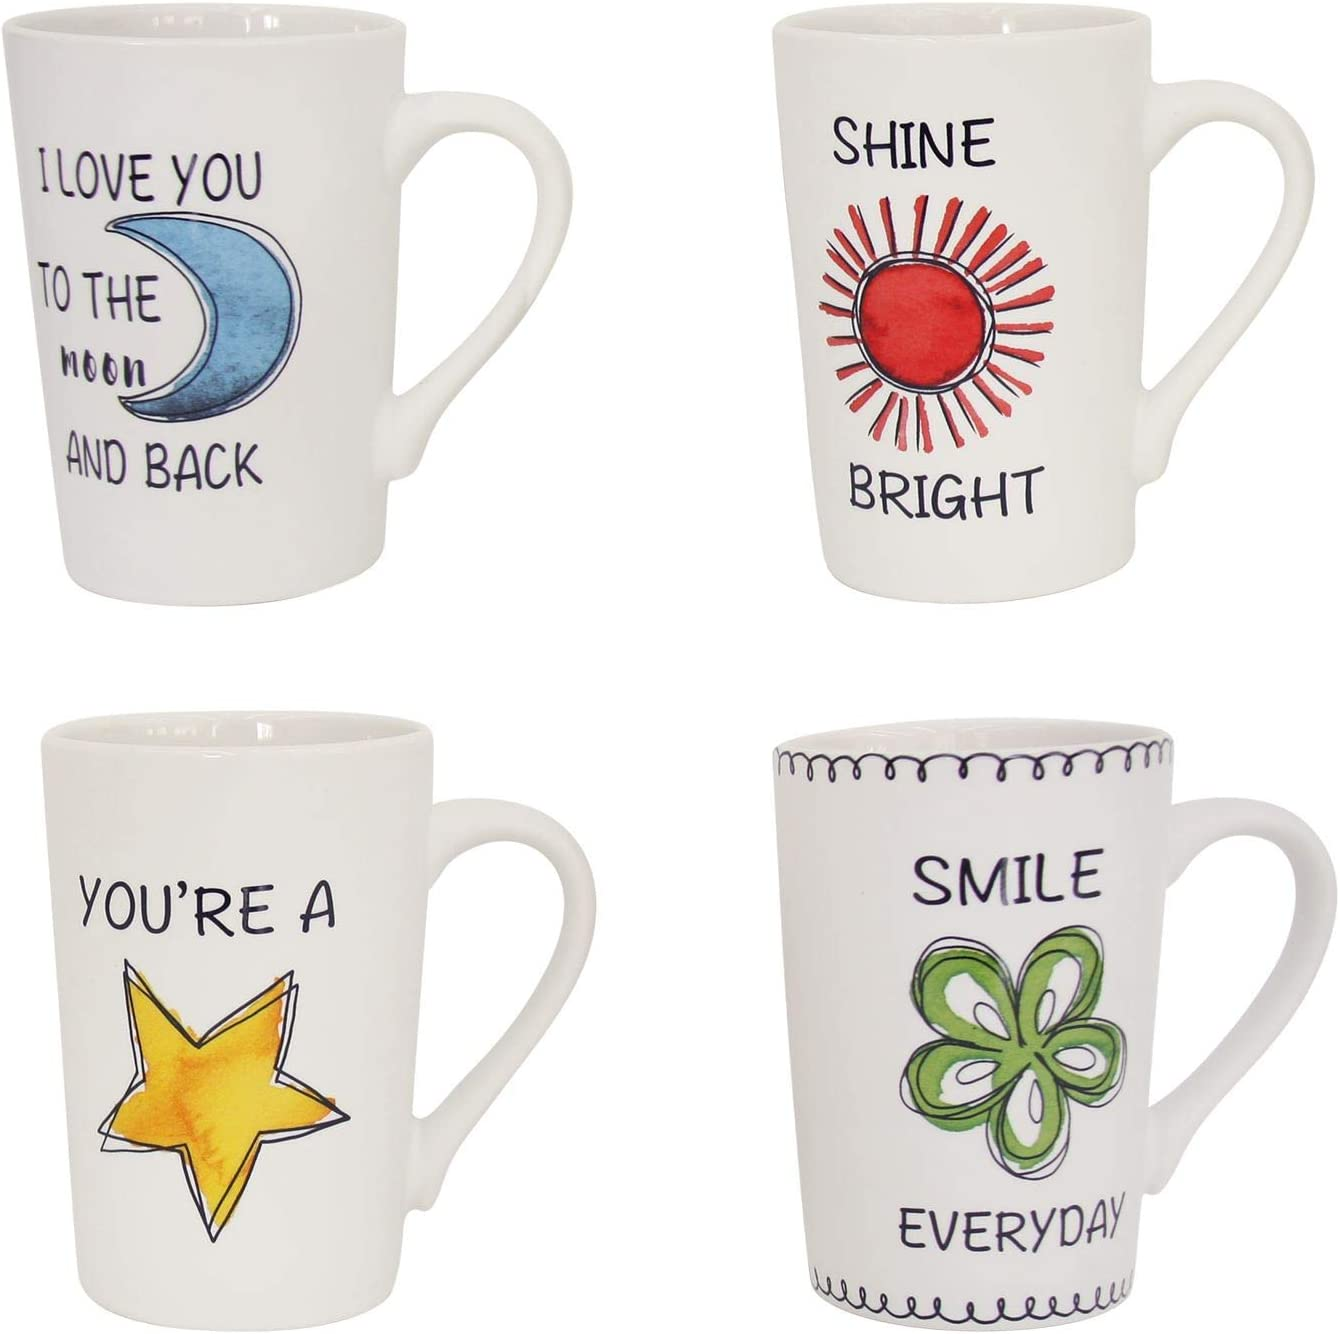 Set of 4 Coffee Mugs Tea Cups with Quote Caption Illustration Print Home Kitchen Accessory Gift Microwave Dishwasher Safe Porcelain 13.5oz